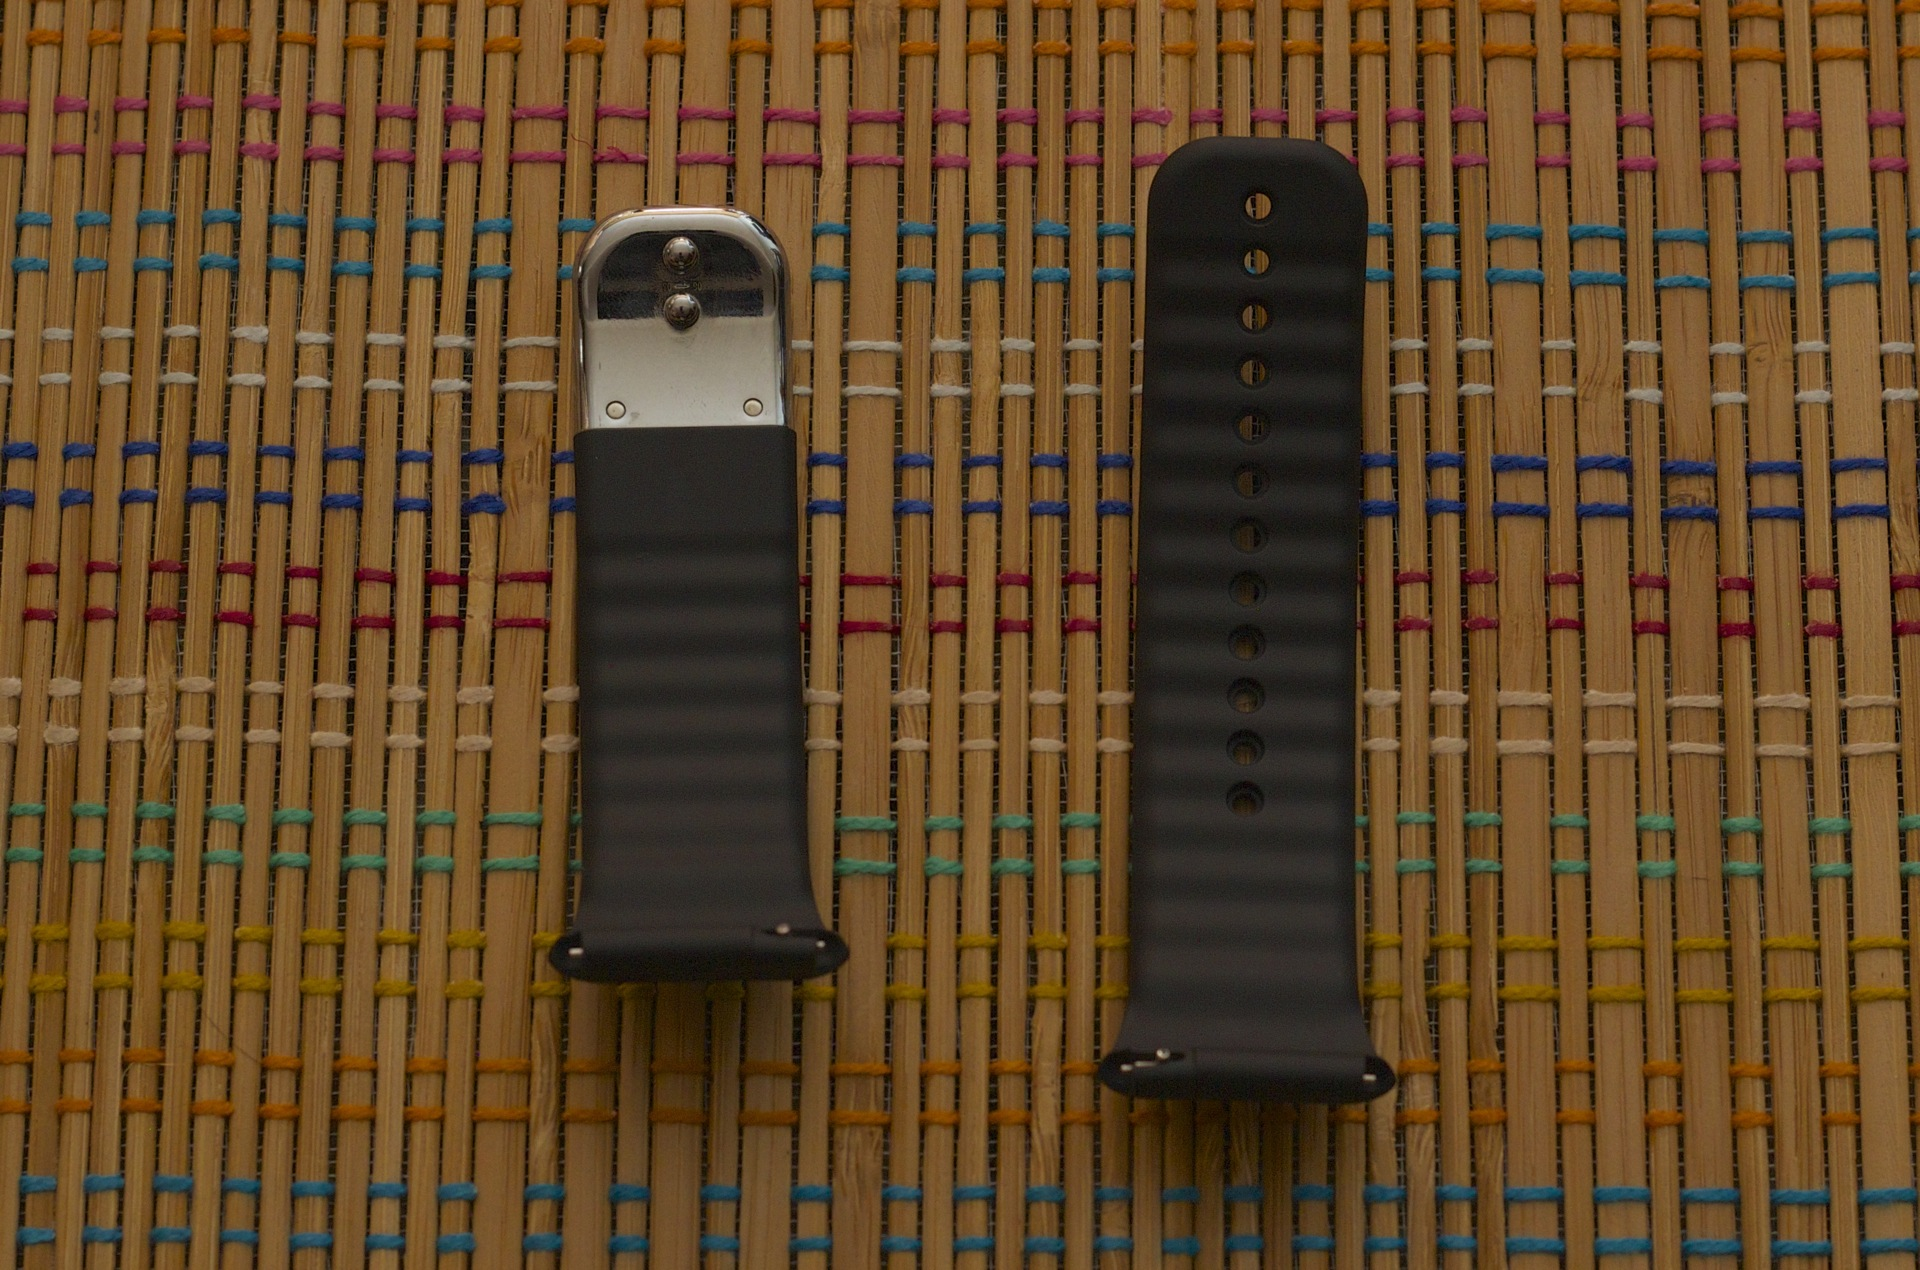 Samsung's strap is so stiff you have to take it off to get a good picture of it. Those silver pegs hold the two halves of the band together.